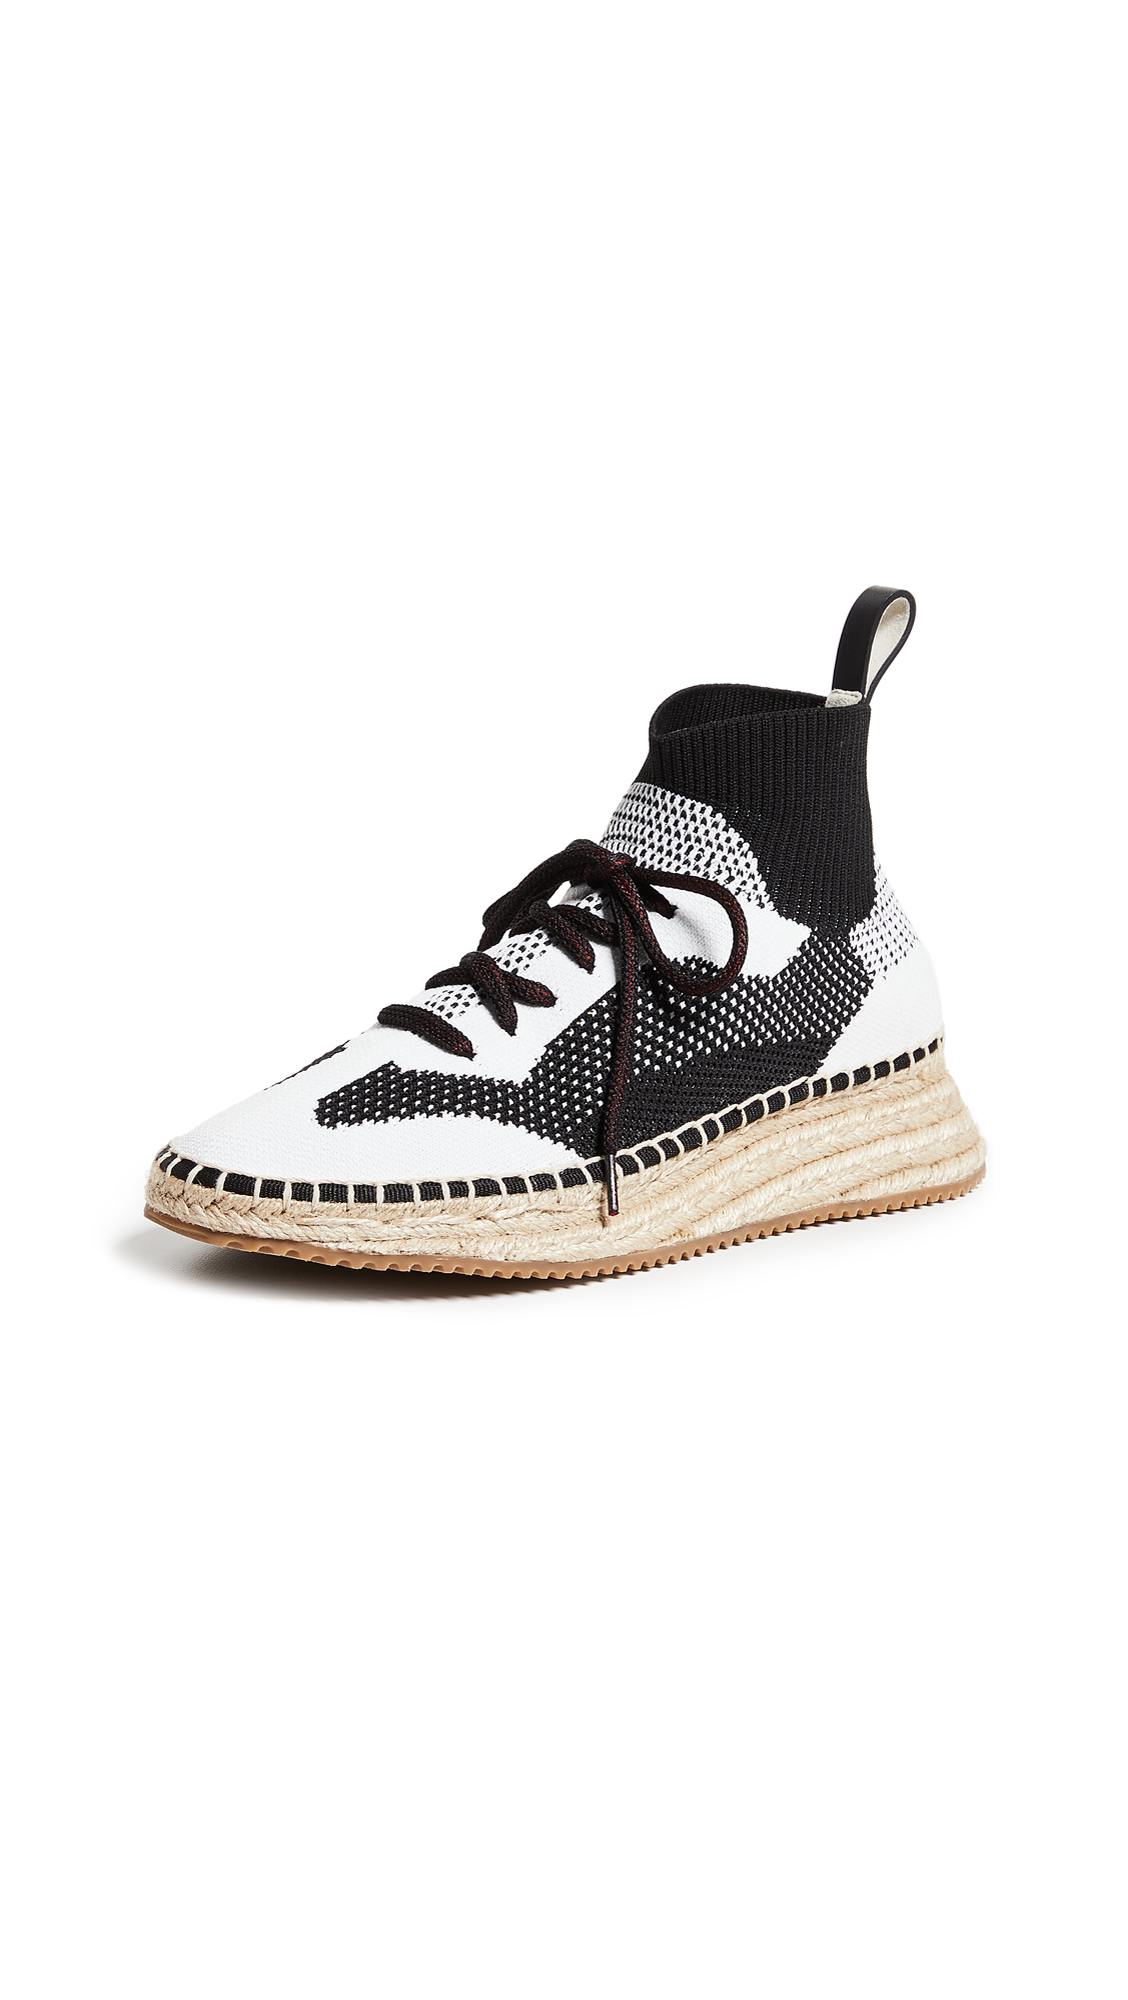 DAKOTA KNIT ESPADRILLES